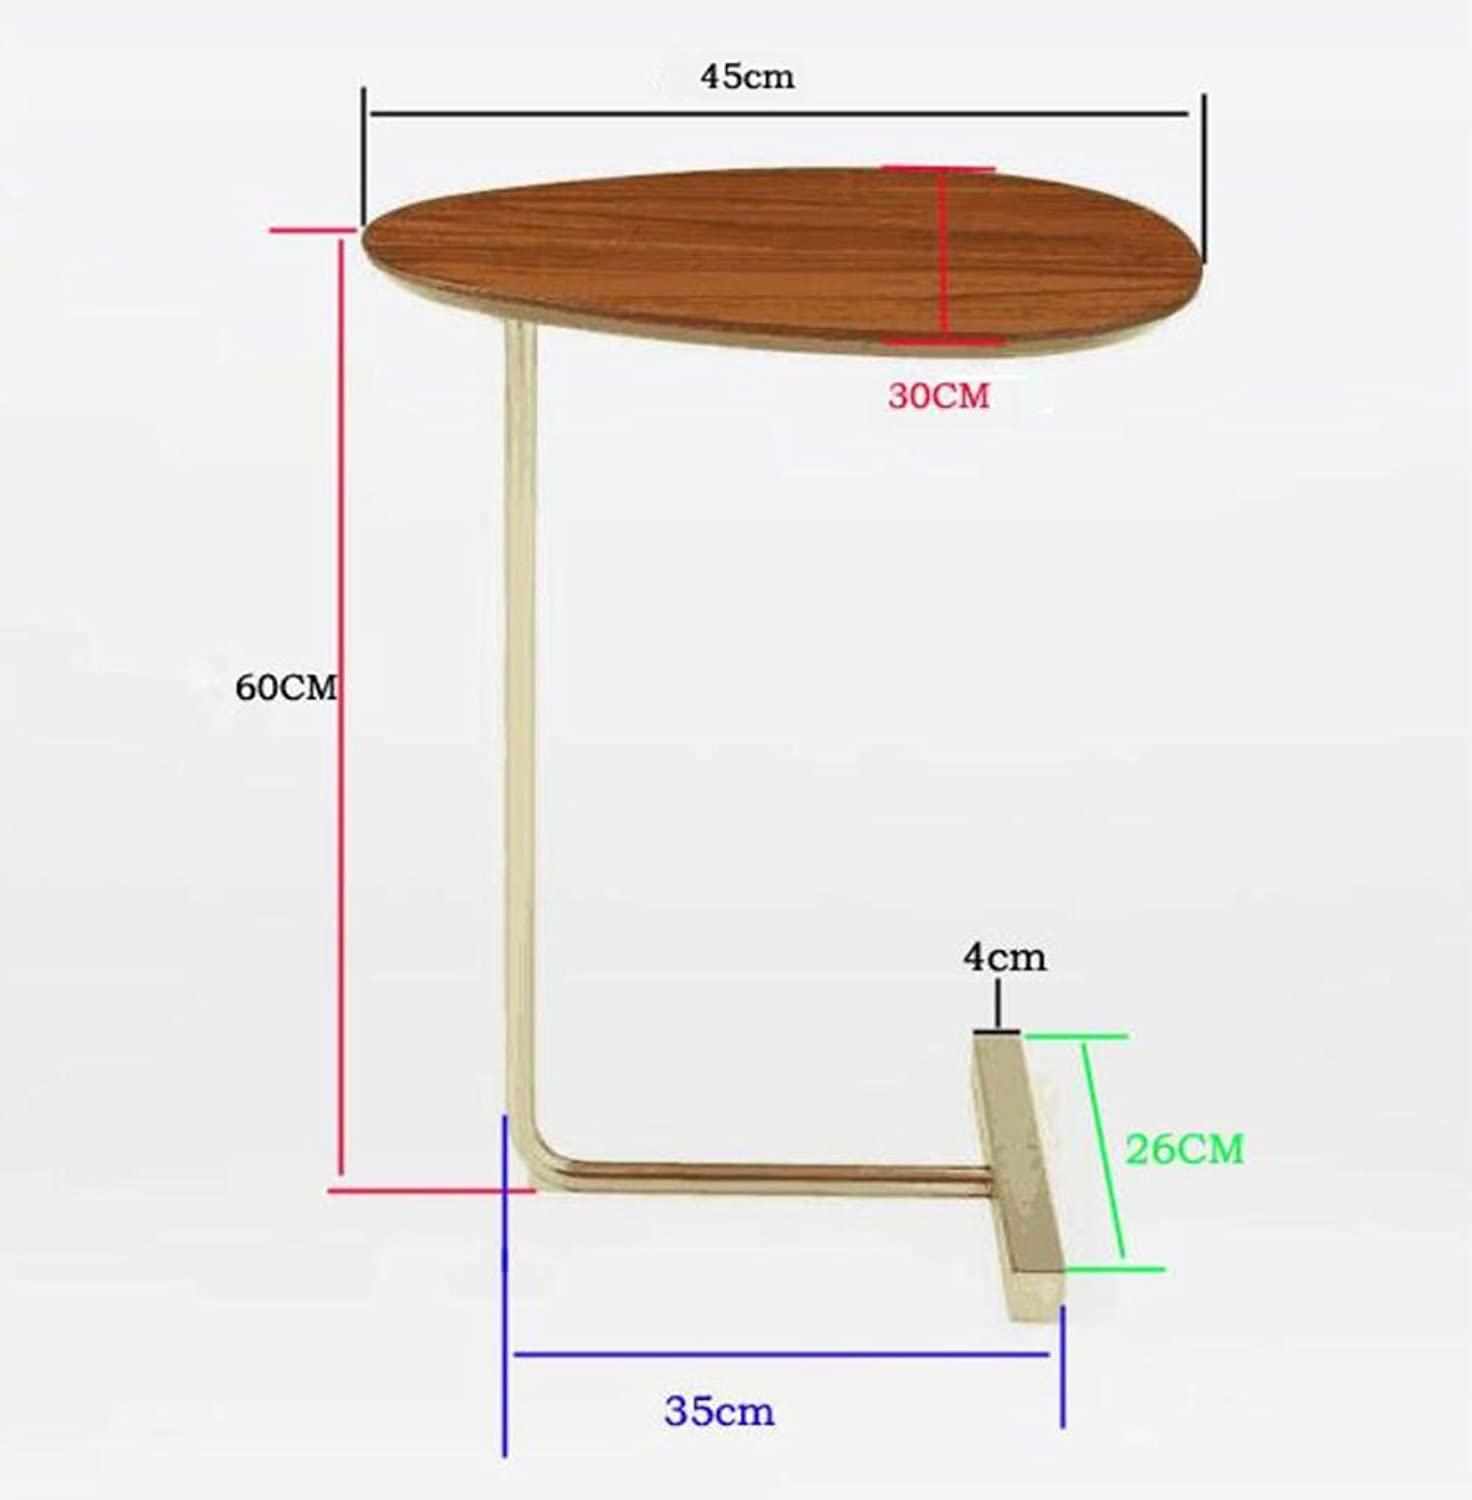 Folding Table- Wooden Sofa Table, Small Table Dessert Table Bedroom Small Desk Multi-Function Storage Table Living Room Sofa Side Mobile Small Coffee Table 45  30  60cm Wall-Mounted Table